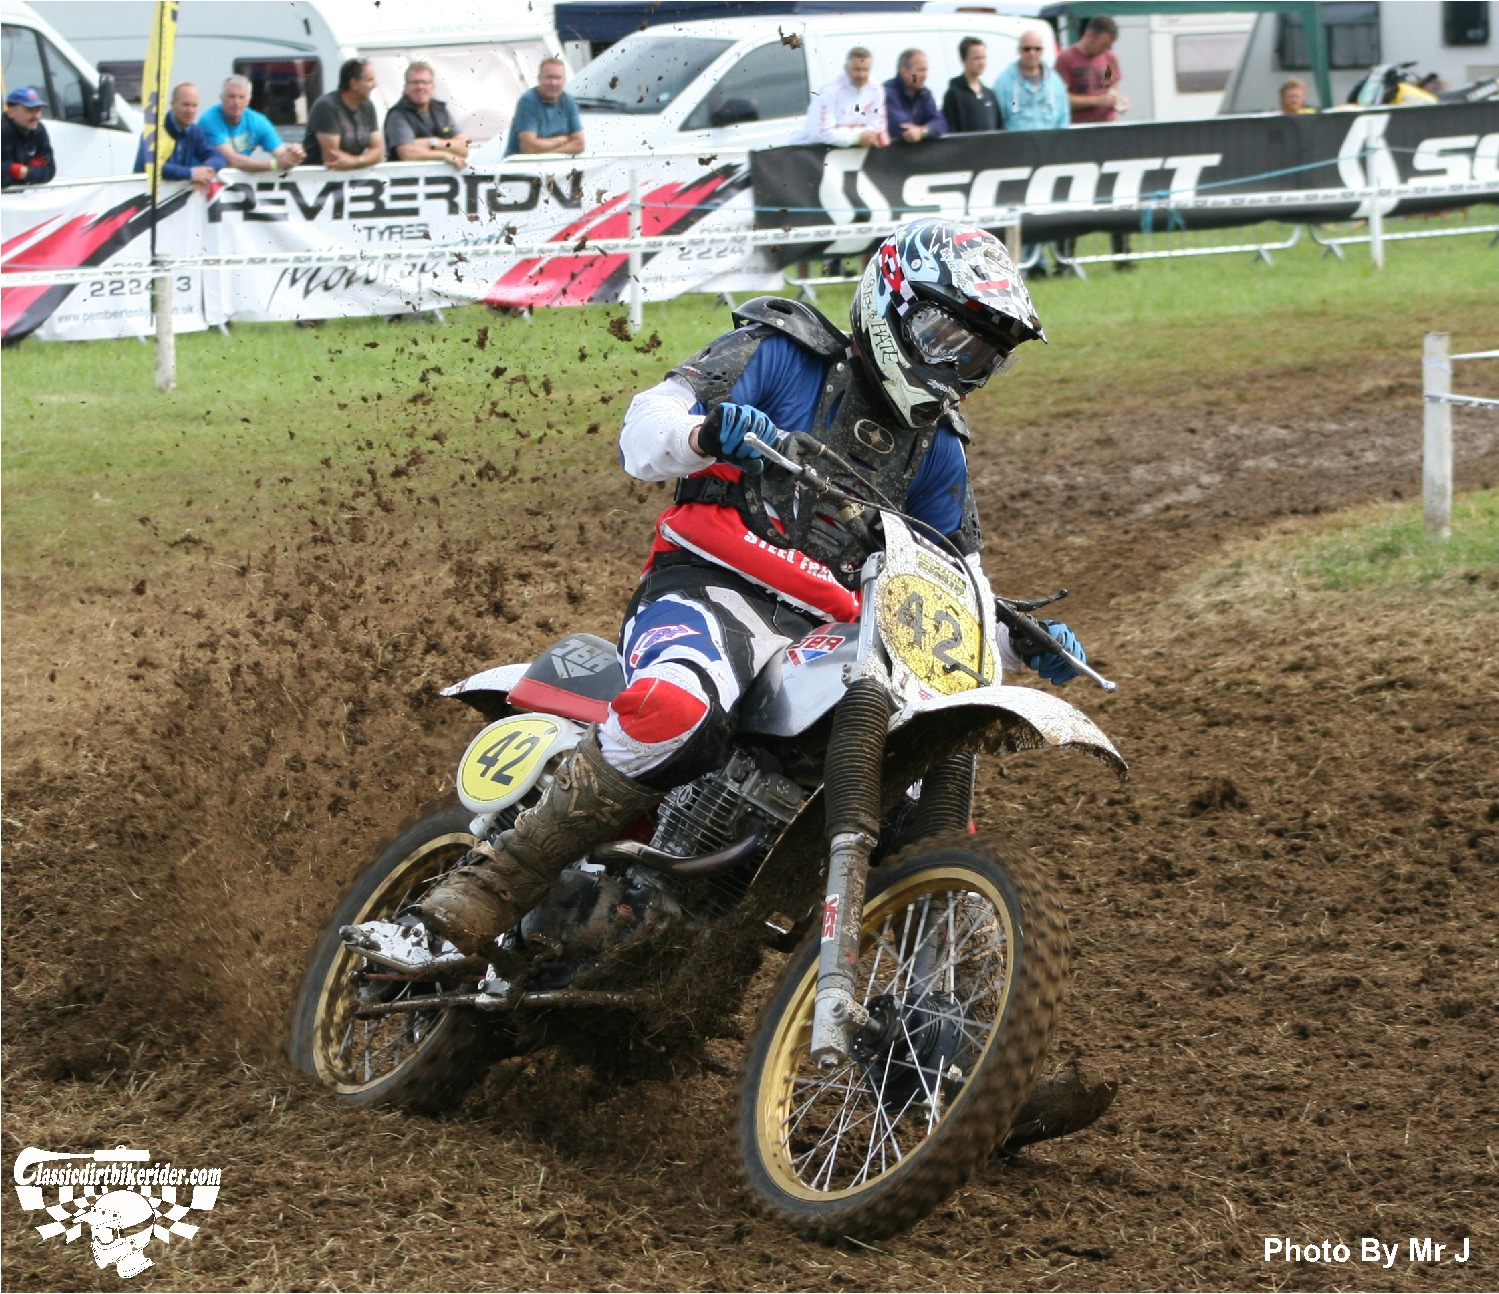 king of the castle 2015 photos Farleigh Castle twinshock motocross classicdirtbikerider.com 140